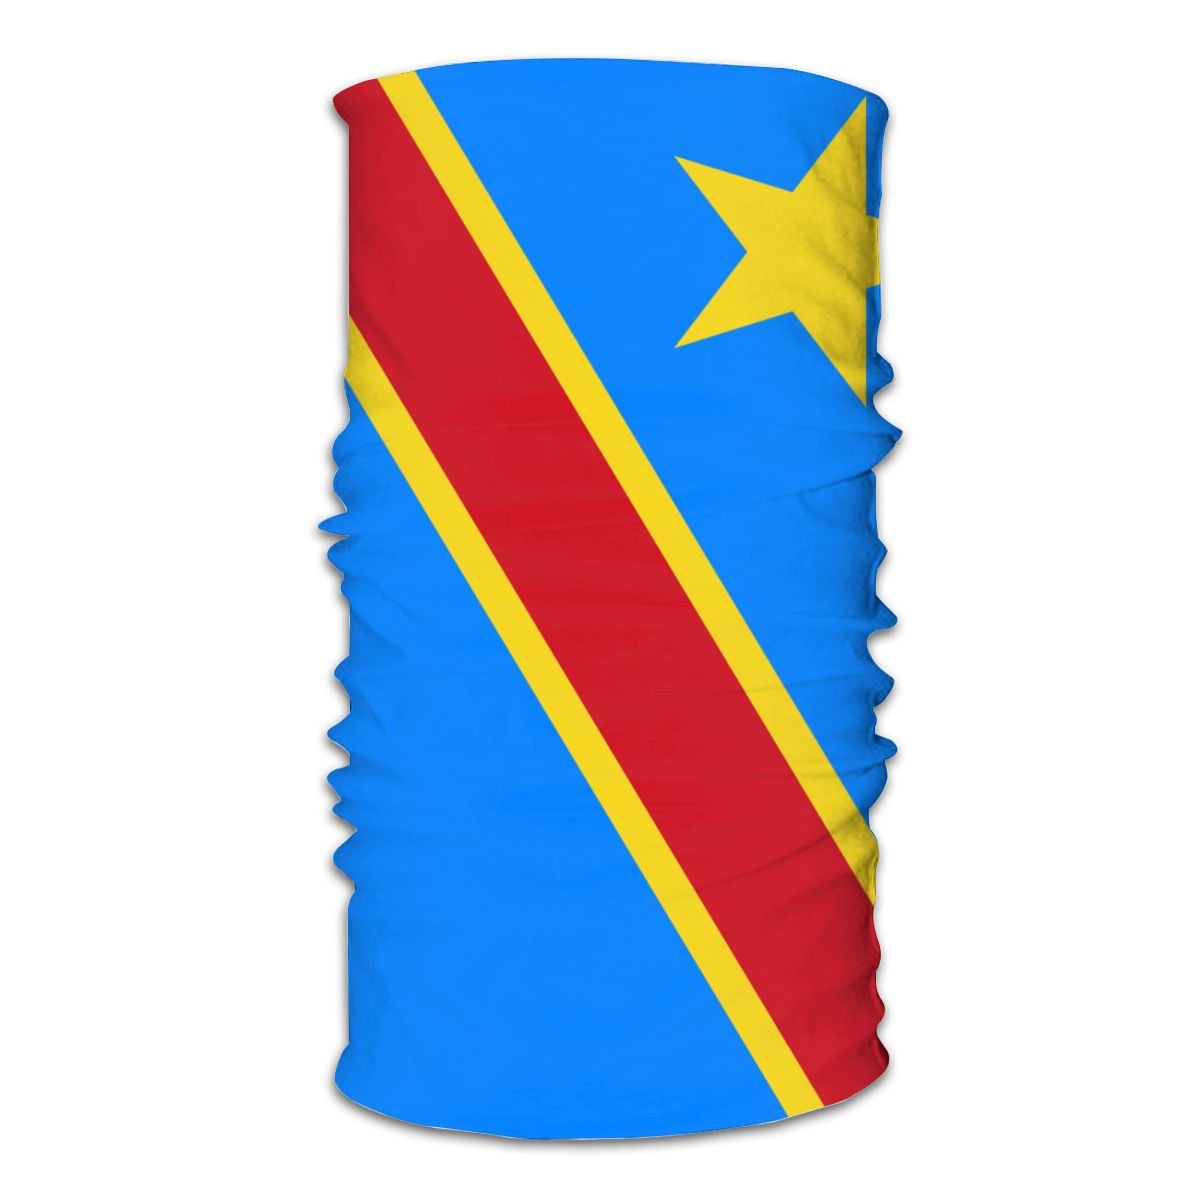 Republic Of The Congo Scarf Neck Face Mask Unisex Fashion Tube Scarf Tubular Bandana Protective Headband Biking Hiking